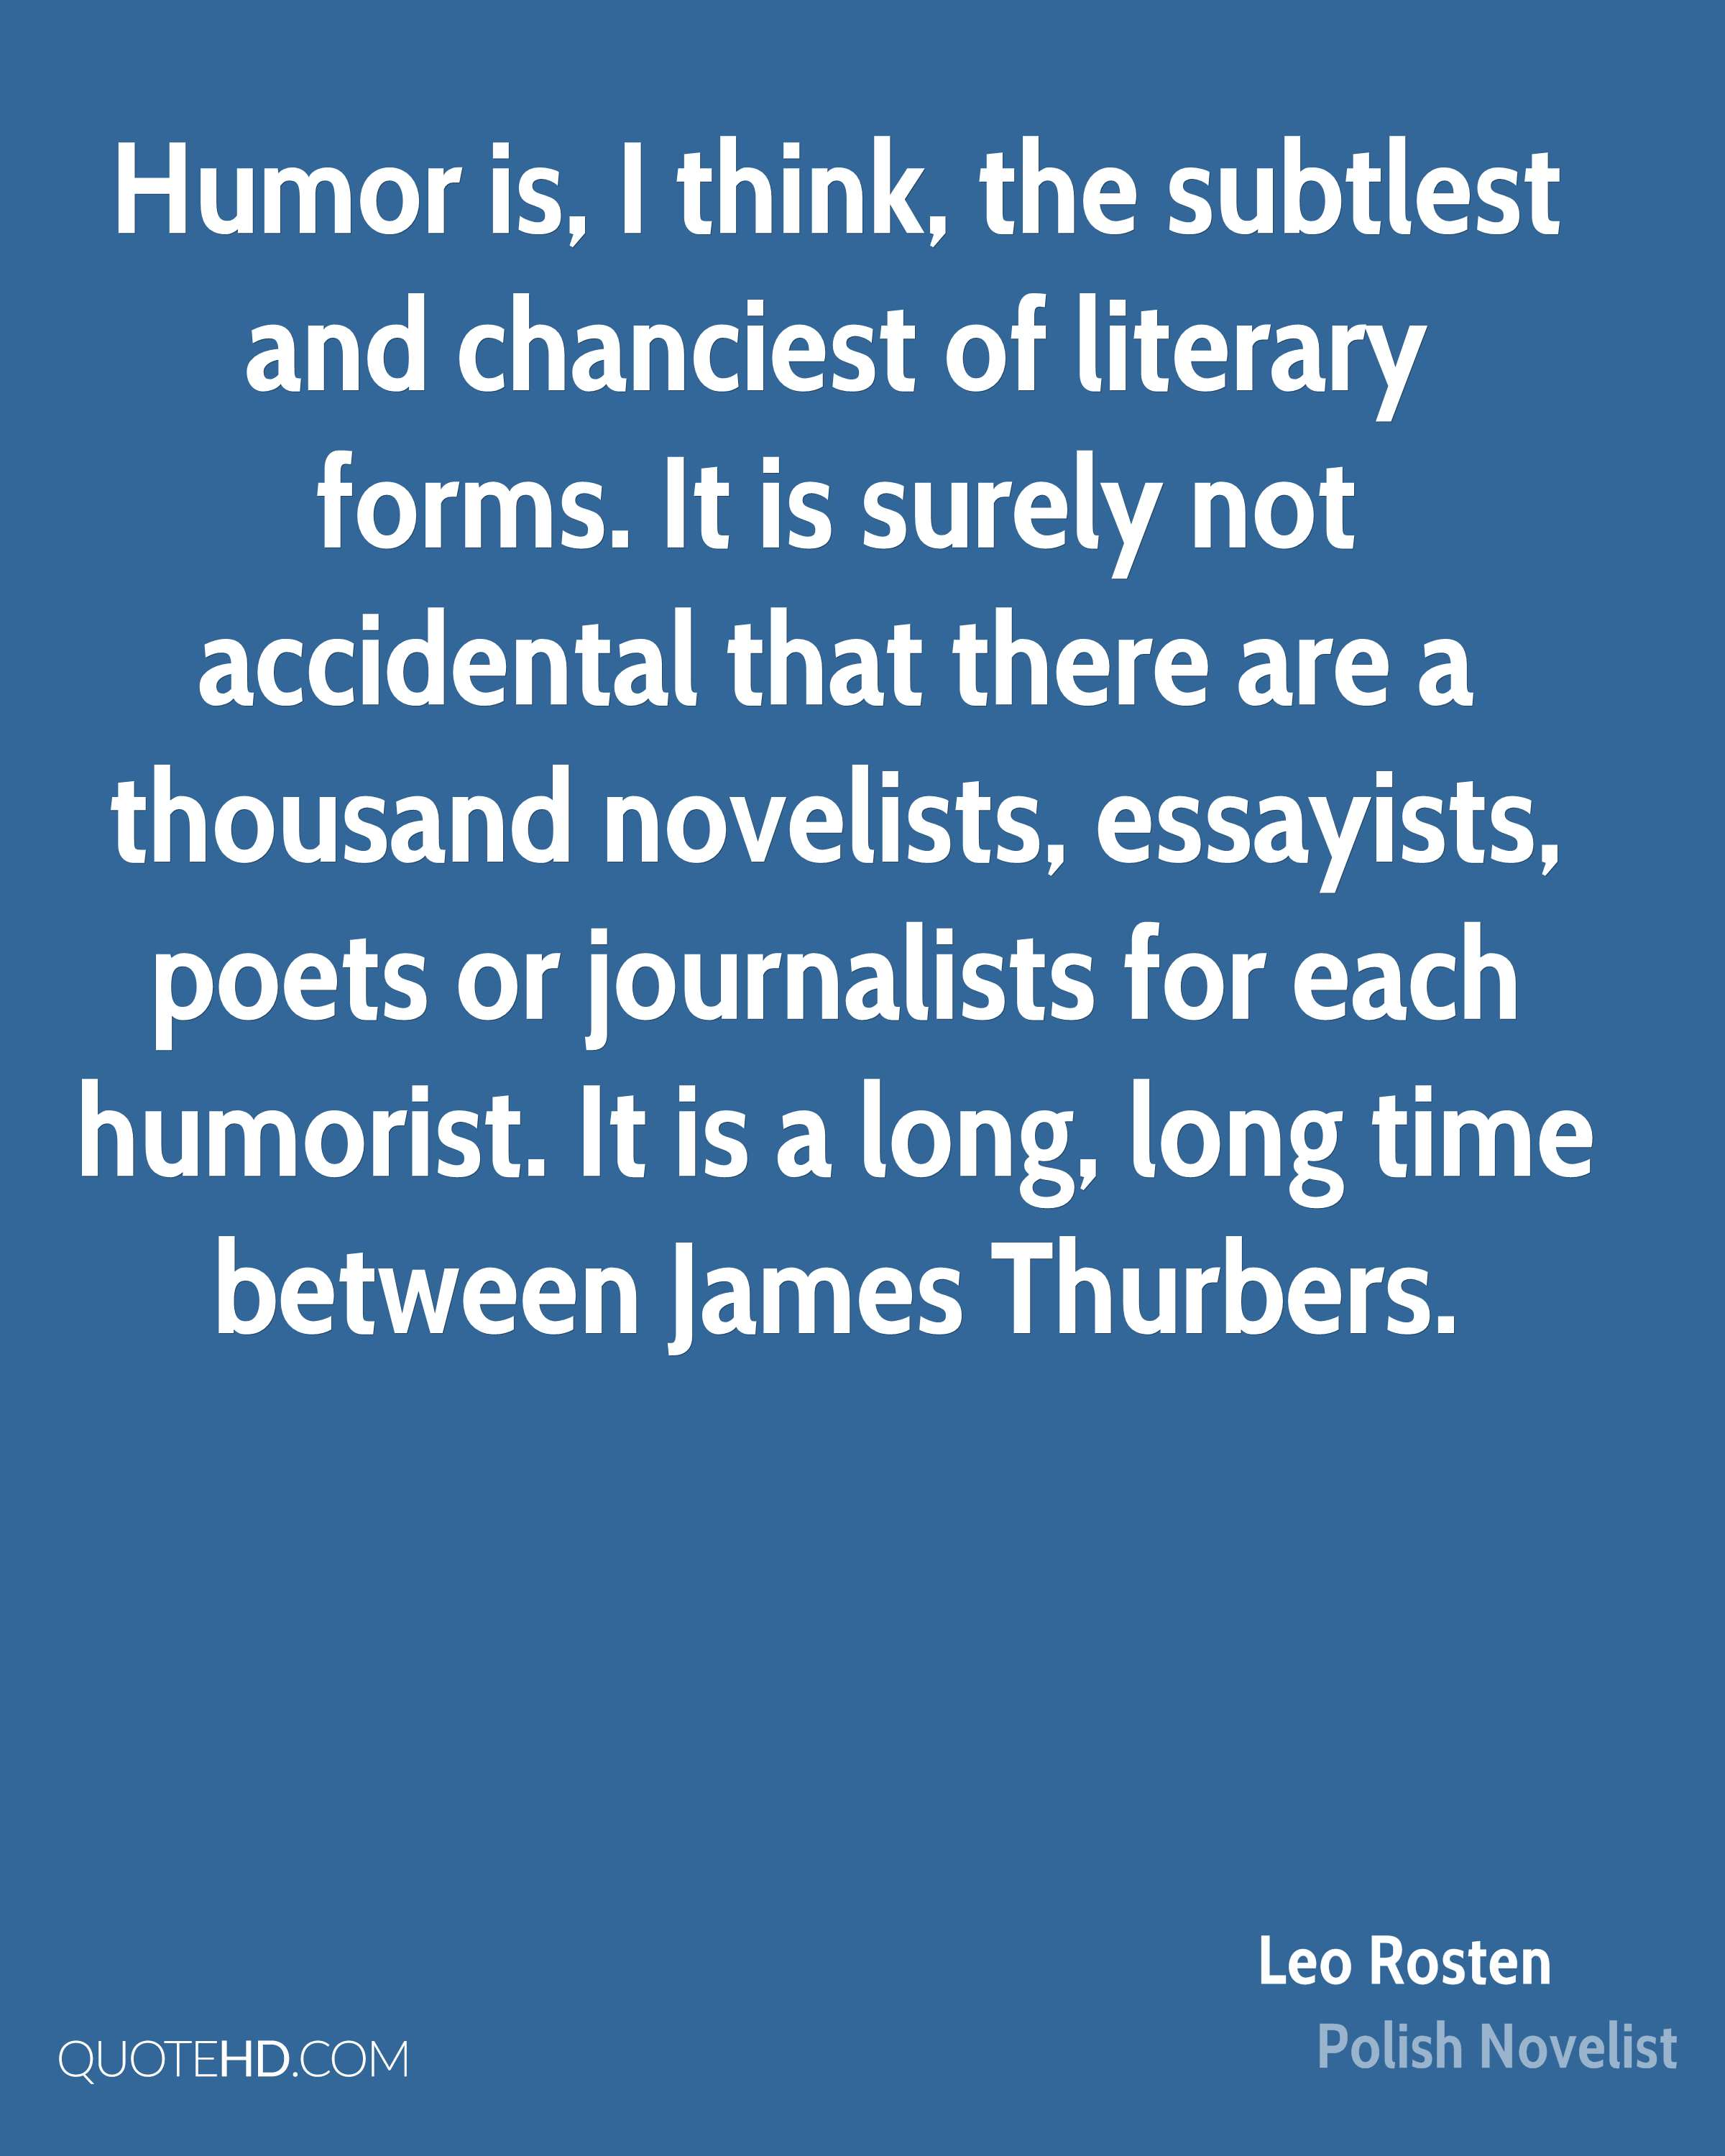 Humor is, I think, the subtlest and chanciest of literary forms. It is surely not accidental that there are a thousand novelists, essayists, poets or journalists for each humorist. It is a long, long time between James Thurbers.